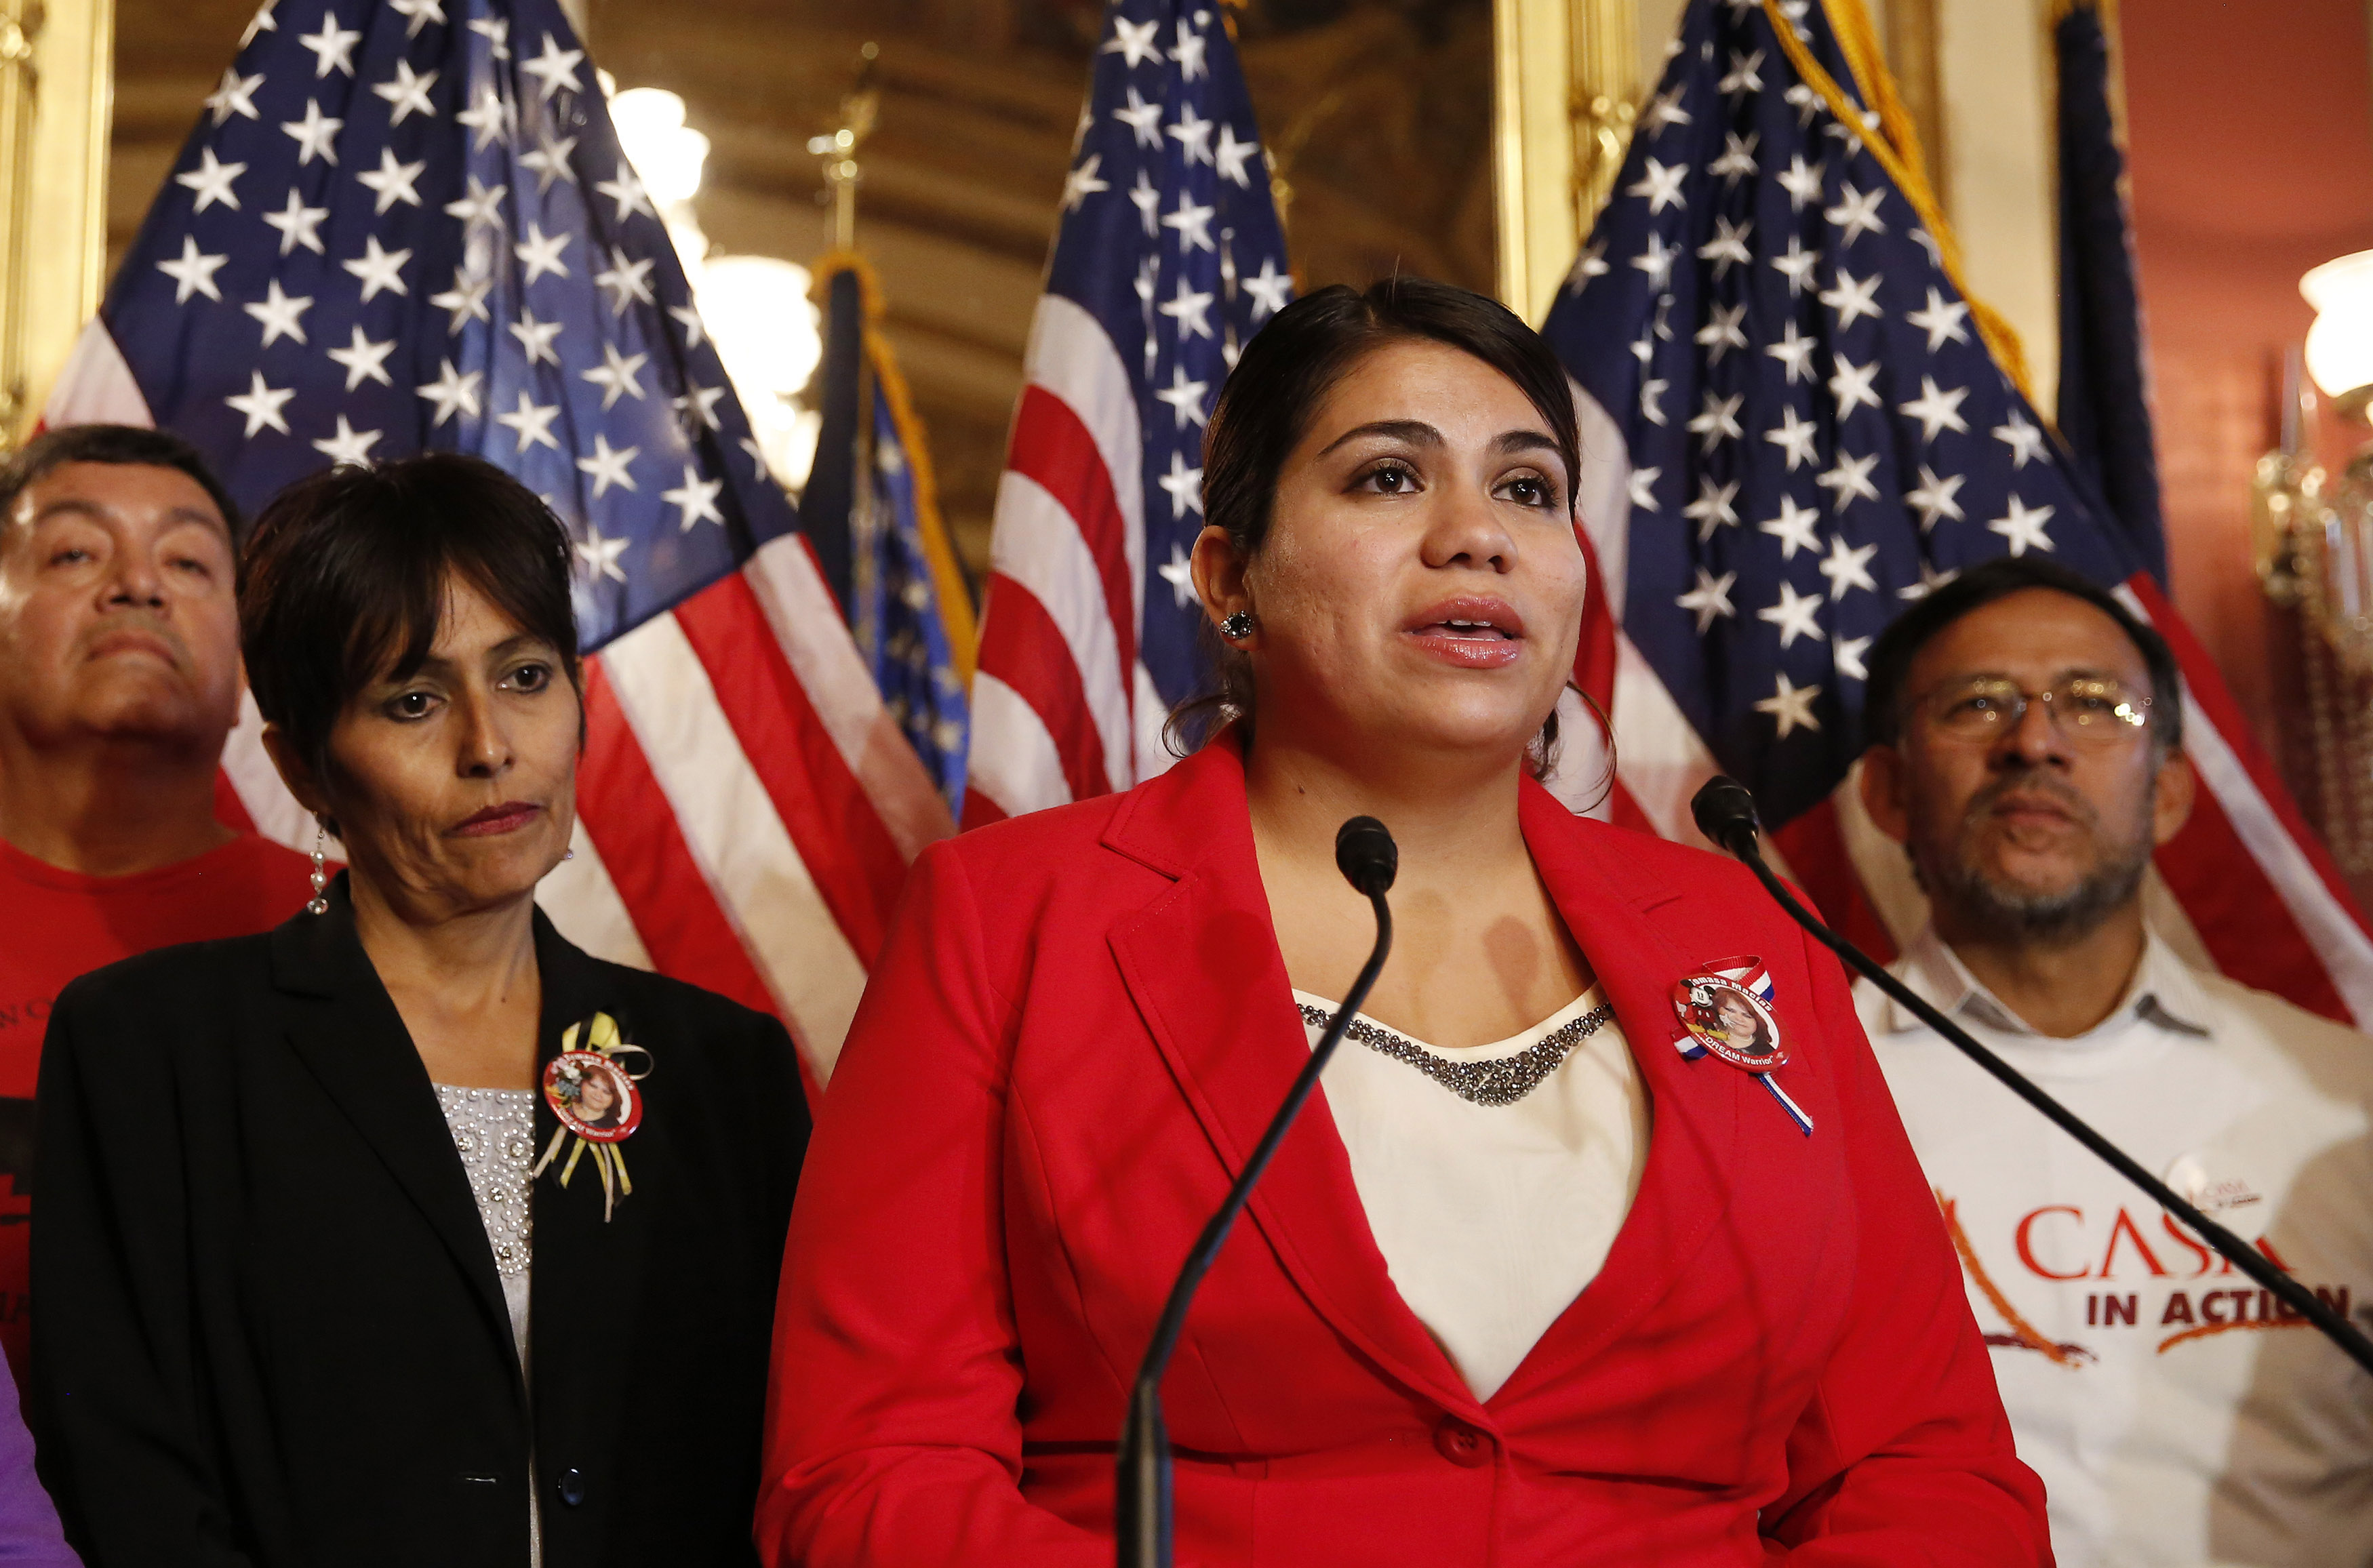 FILE - Immigration activist Astrid Silva (in red) stands next to her mother, Barbara Silva, as she speaks about immigration reform at a news conference on Capitol Hill in Washington, Dec. 10, 2014. Astrid Silva will be one of the speakers on the open...